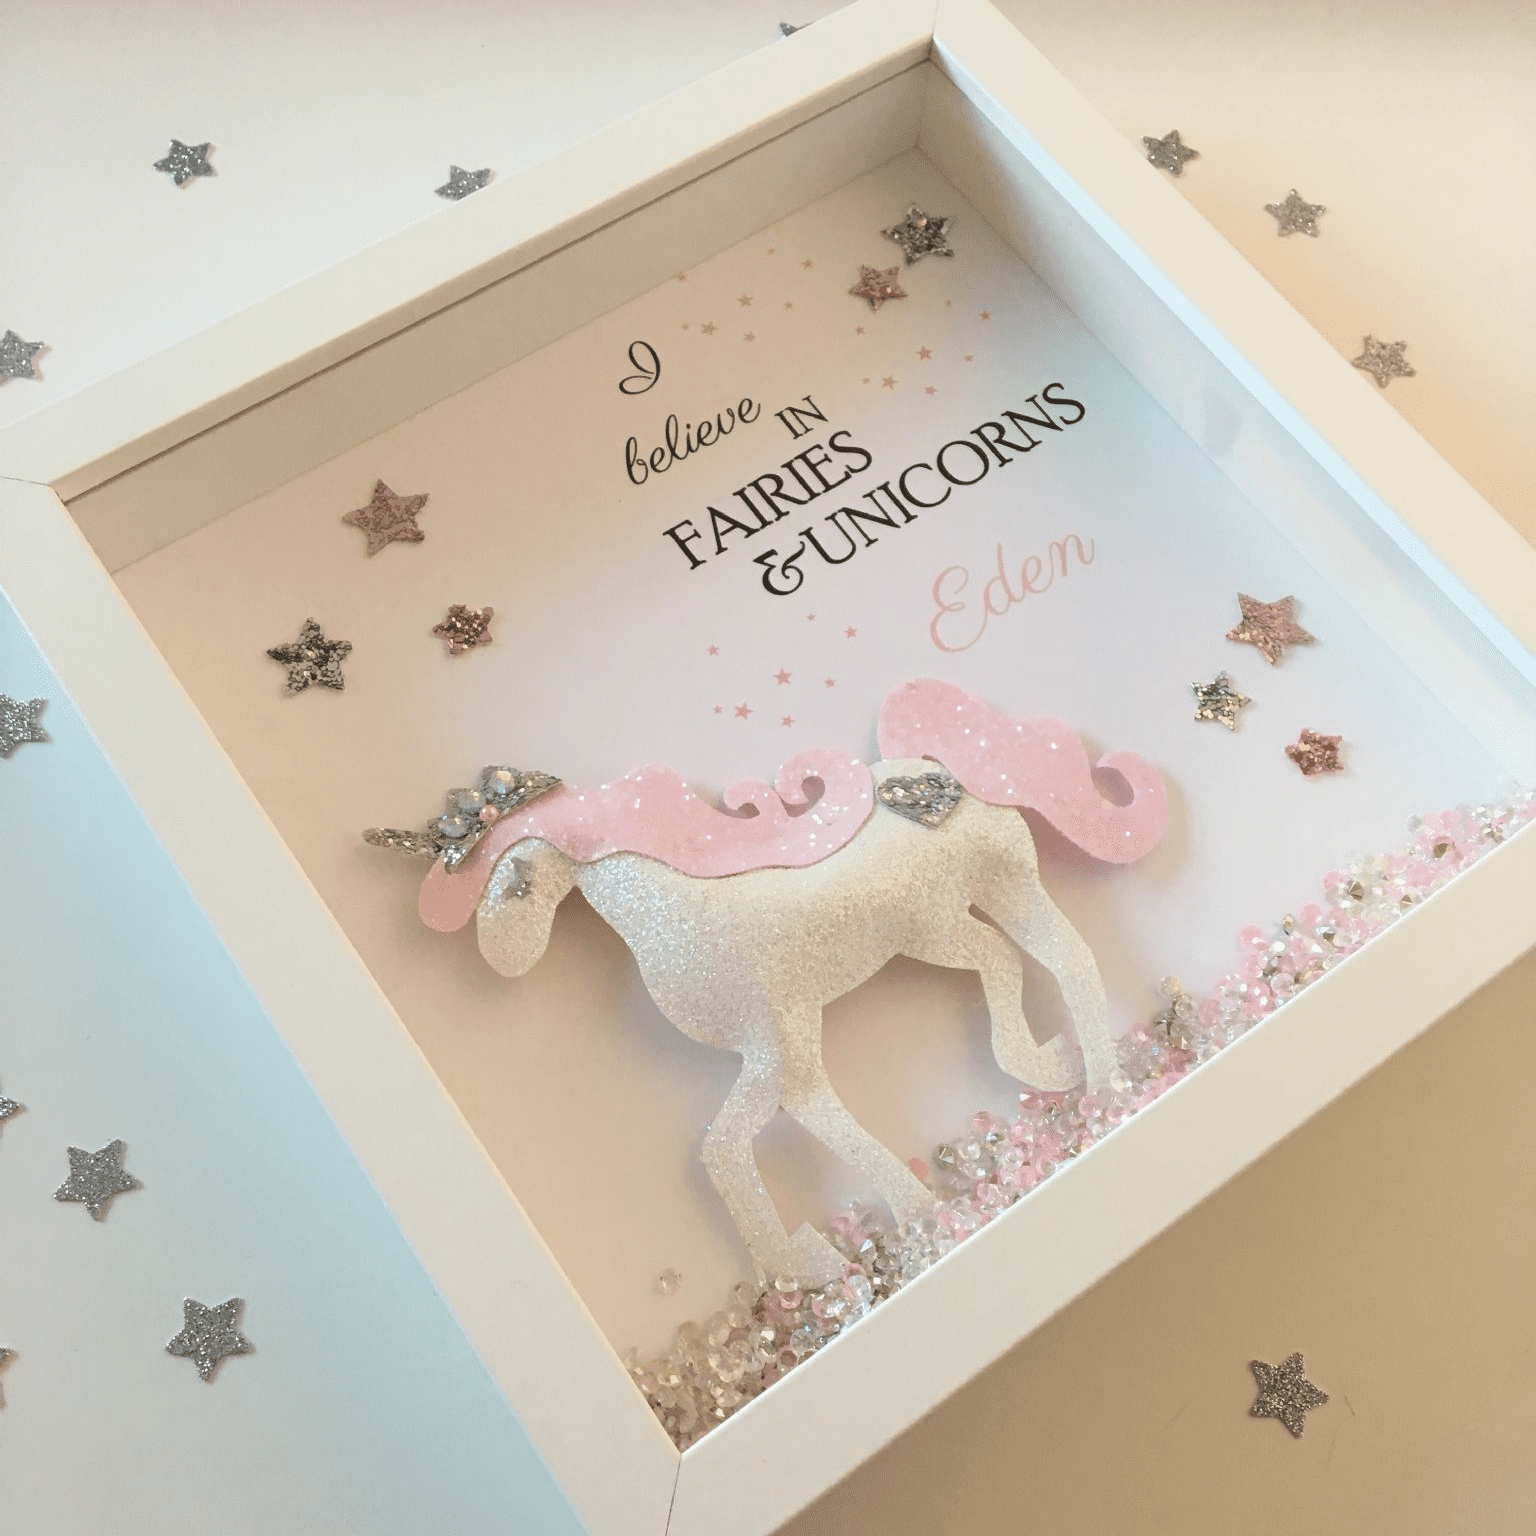 -i-believe-in-fairies-unicorns-glitter-unicorn-frame-9964-p.png